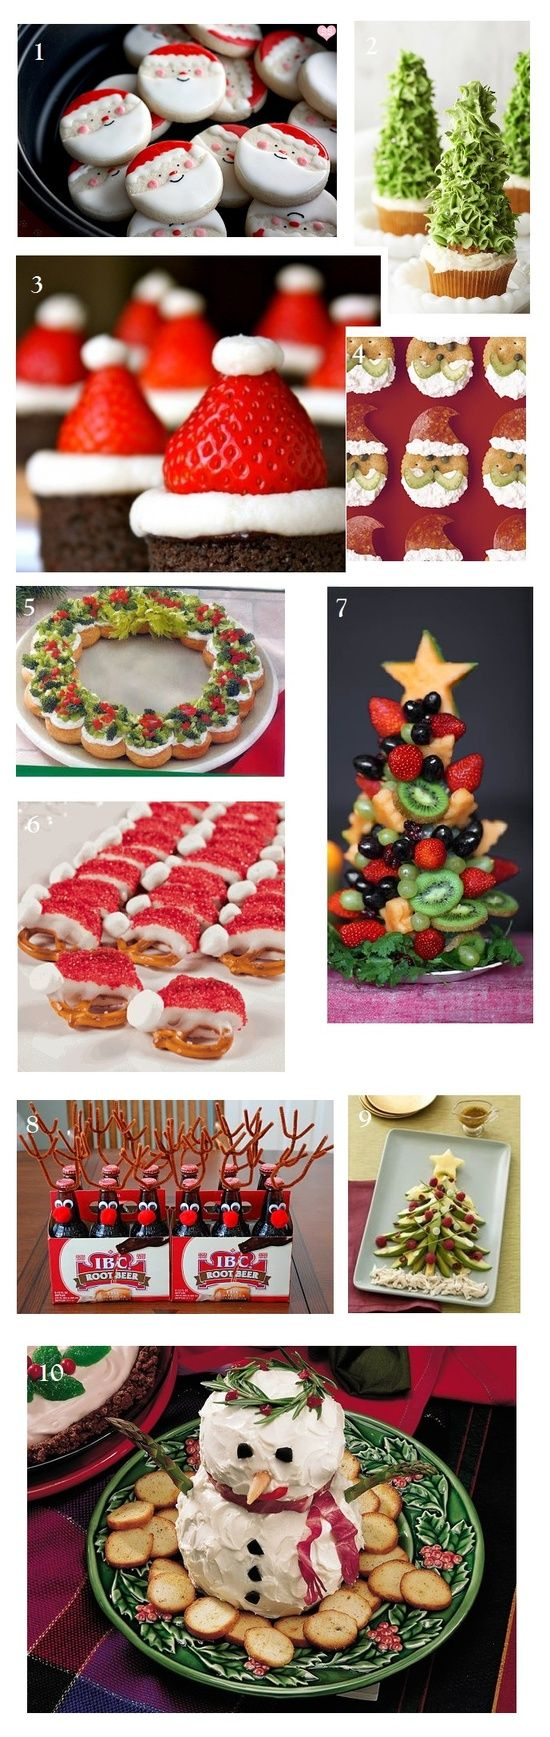 Christmas Party Food Ideas - Appetizers and Desserts: